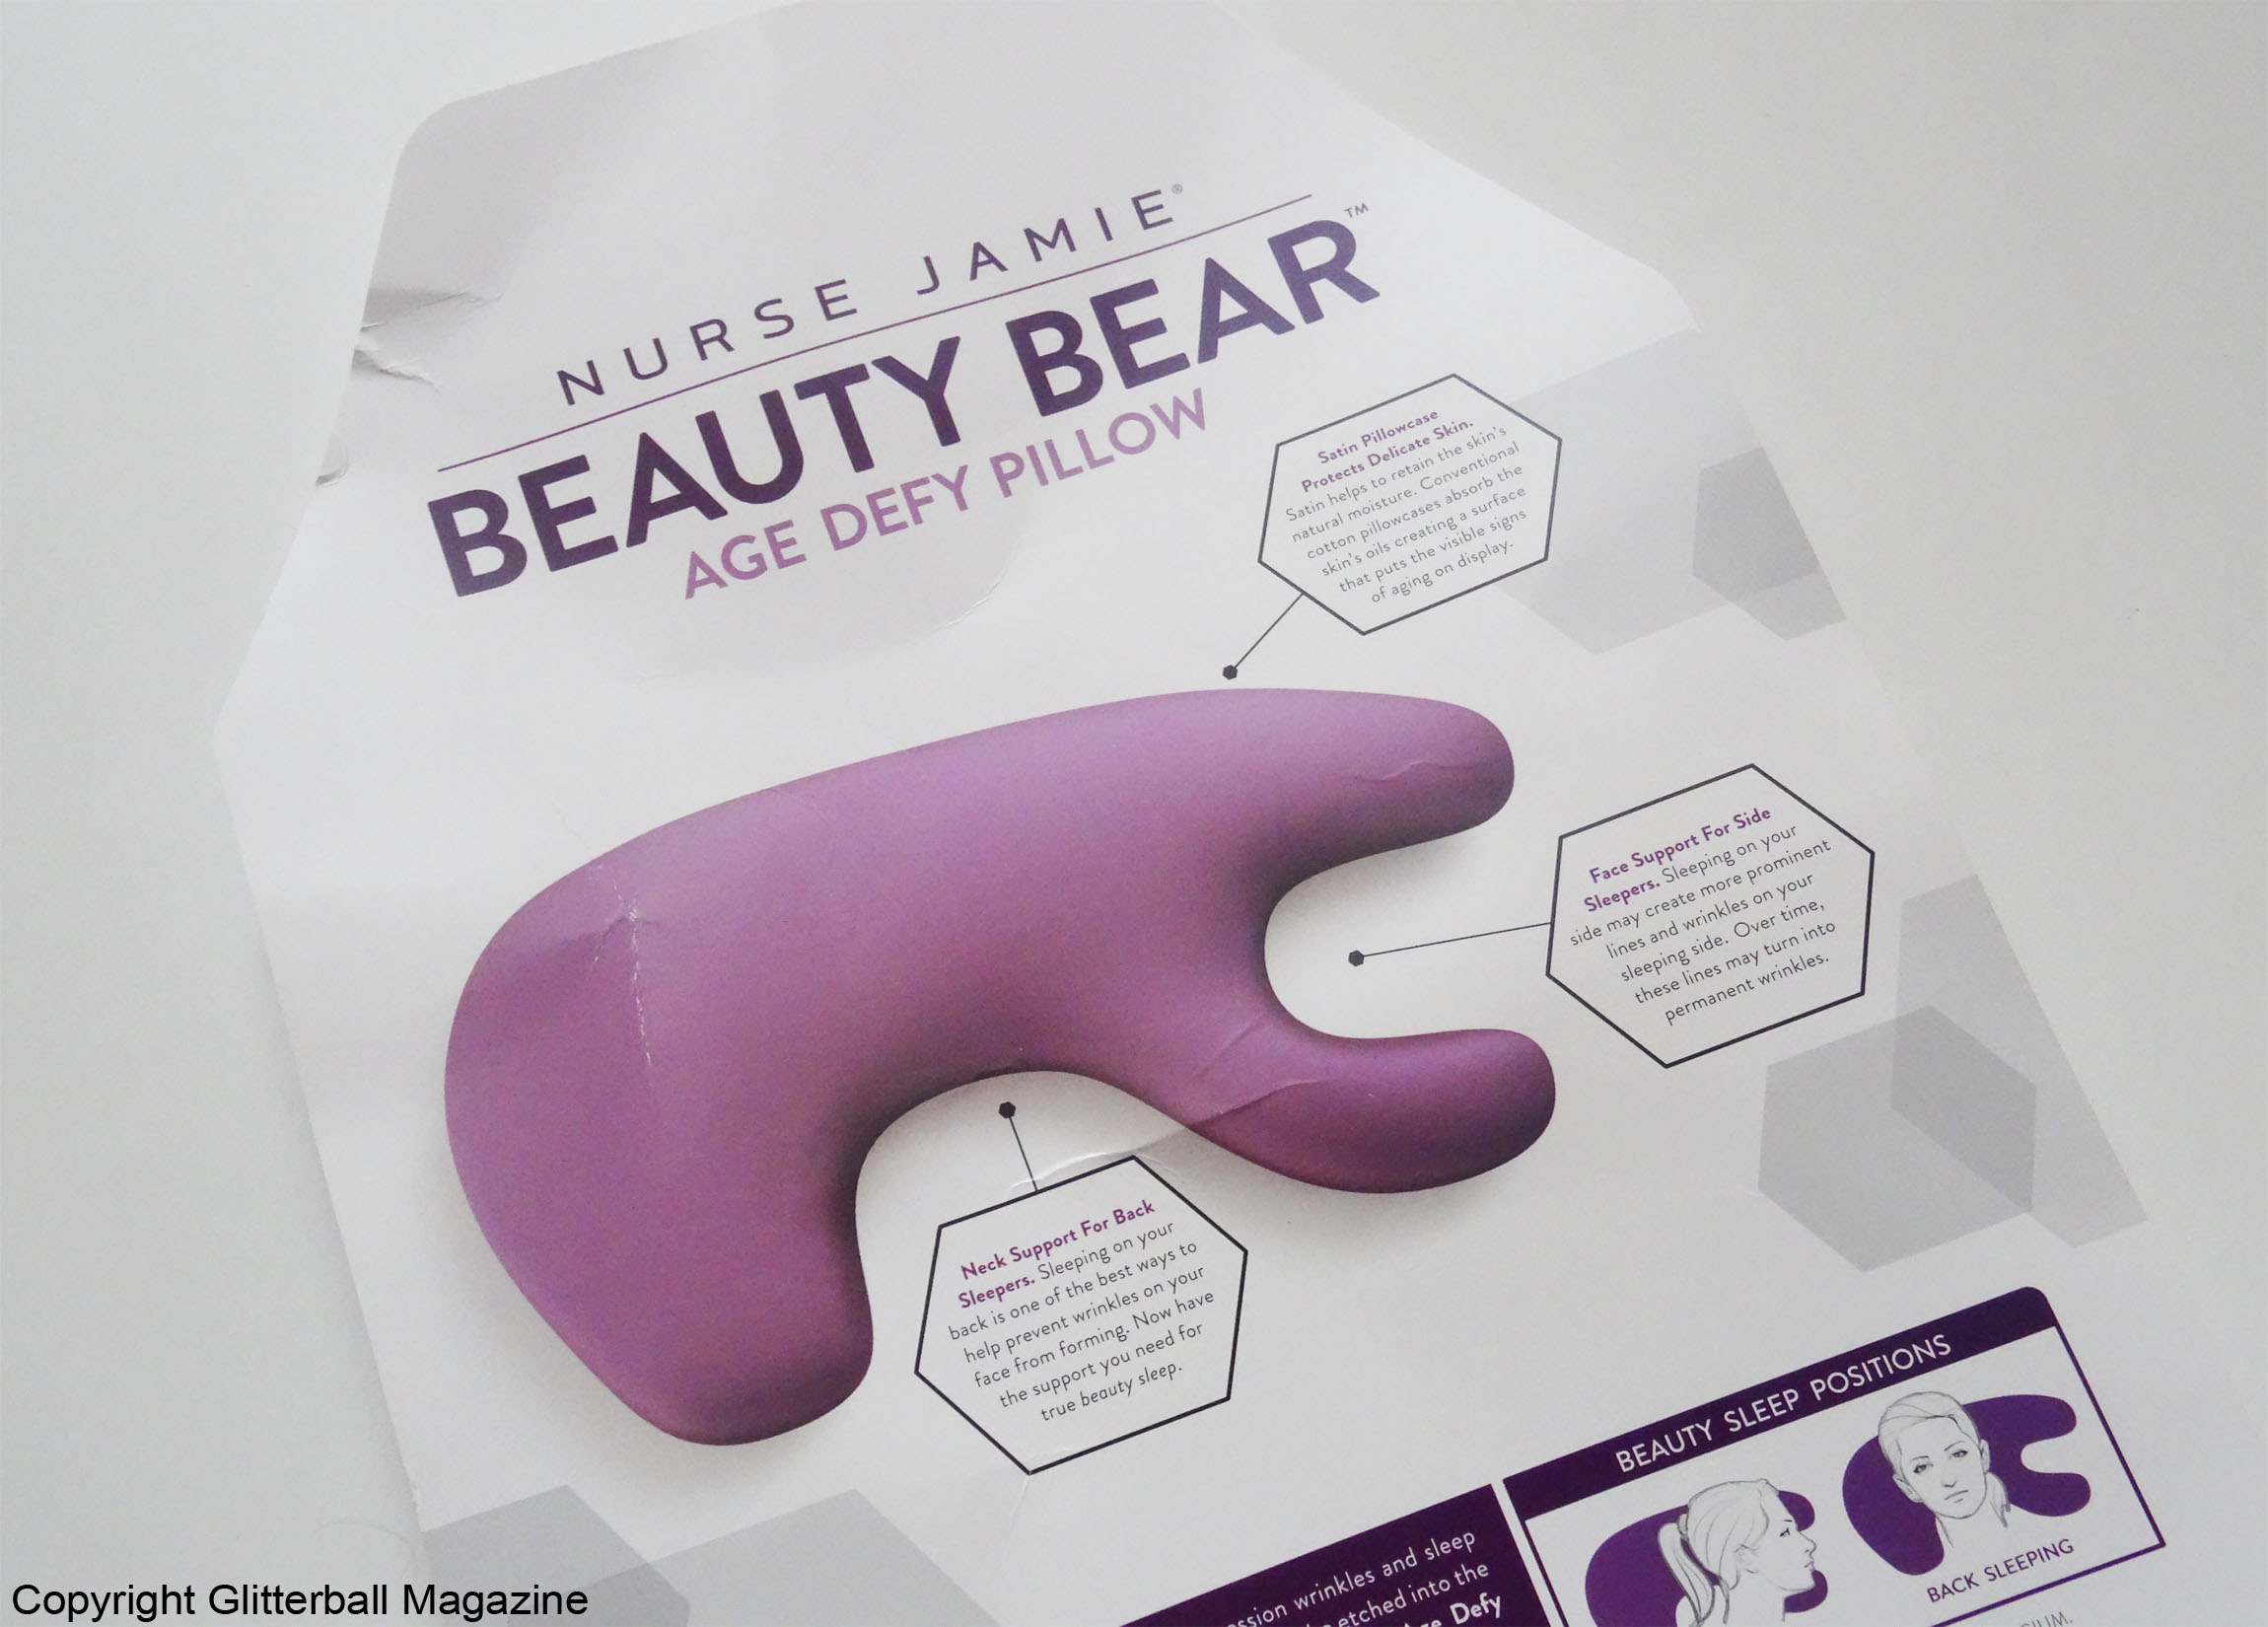 Once you have a Nurse Jamie Beauty Bear™ Age Delay Pillow you\u0027ll find it hard to use anything else. Trust me. It\u0027s sleek and sexy. & NURSE JAMIE BEAUTY BEAR™ AGE DELAY PILLOW - Glitterball Magazine pillowsntoast.com